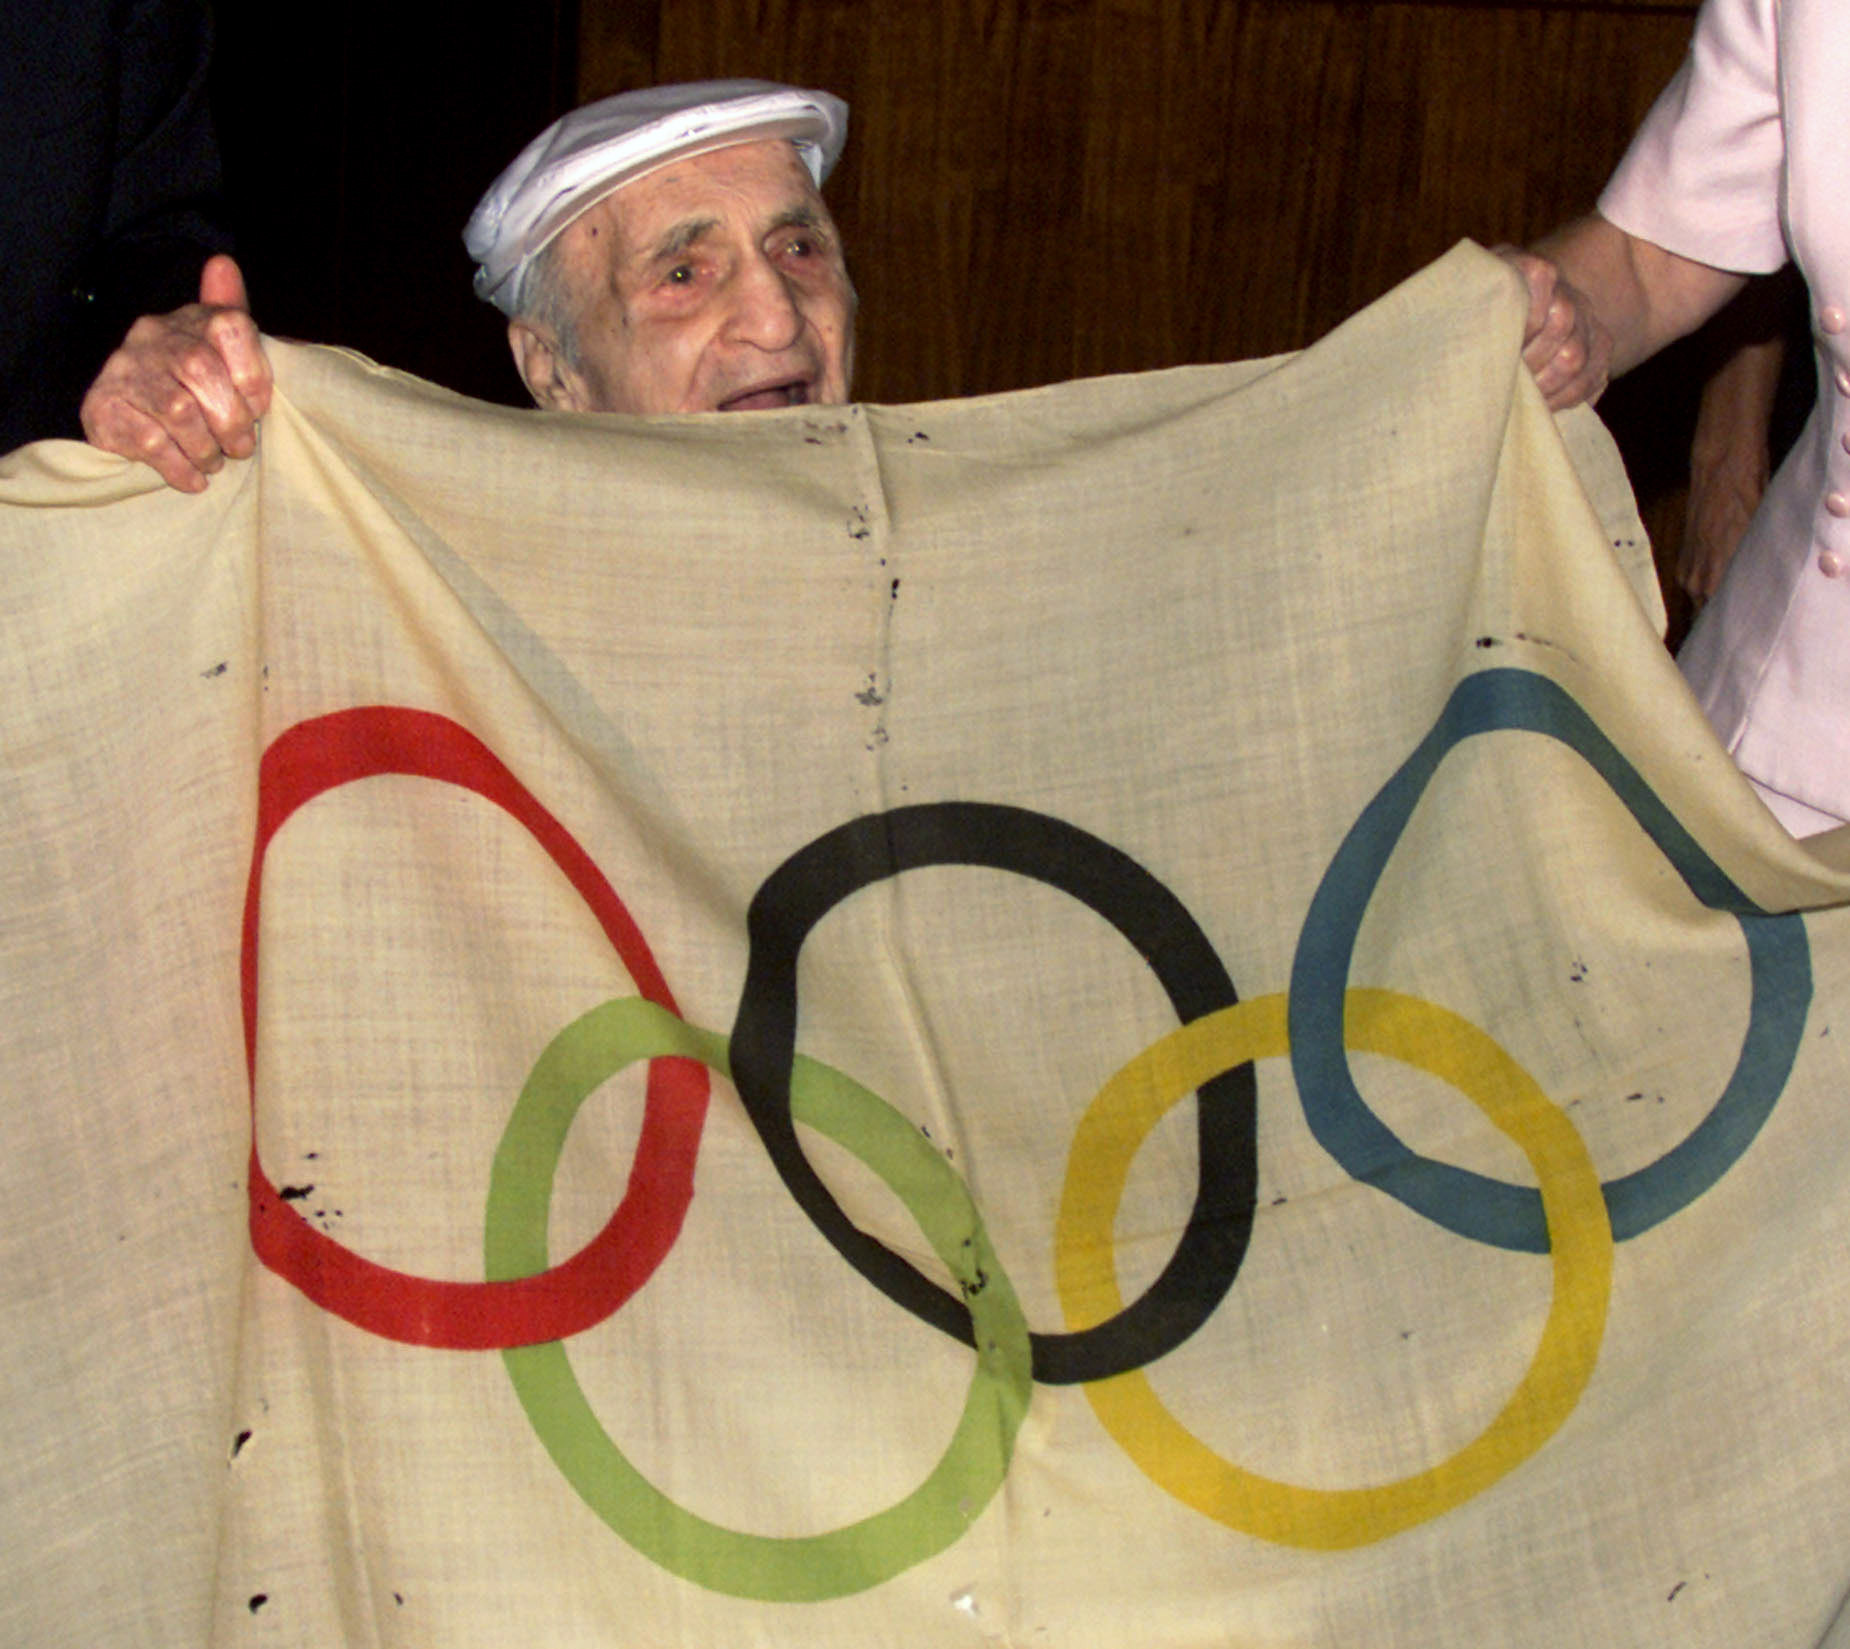 Hal Prieste, then 103, holds the original Olympic flag that he stole from a pole during the 1920 Olympics in Antwerp, where he won a bronze medal in diving. He handed it back to IOC President Juan Antonio Samaranch during the IOC Session in Sydney in 2000 ©Getty Images